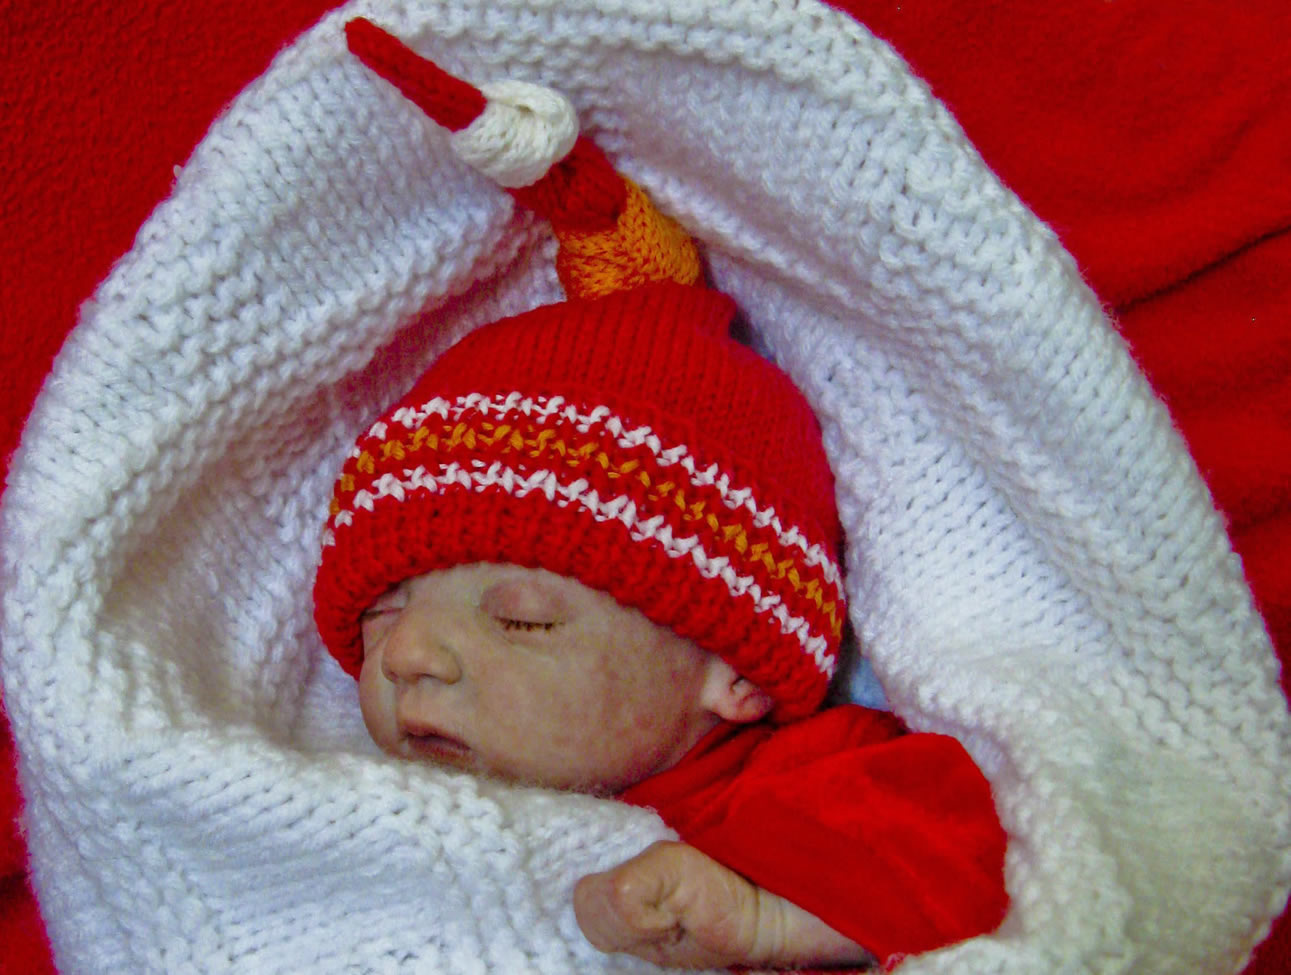 Free Knitting Patterns For Baby Weight Yarn : knitting patterns using fingering weight yarn